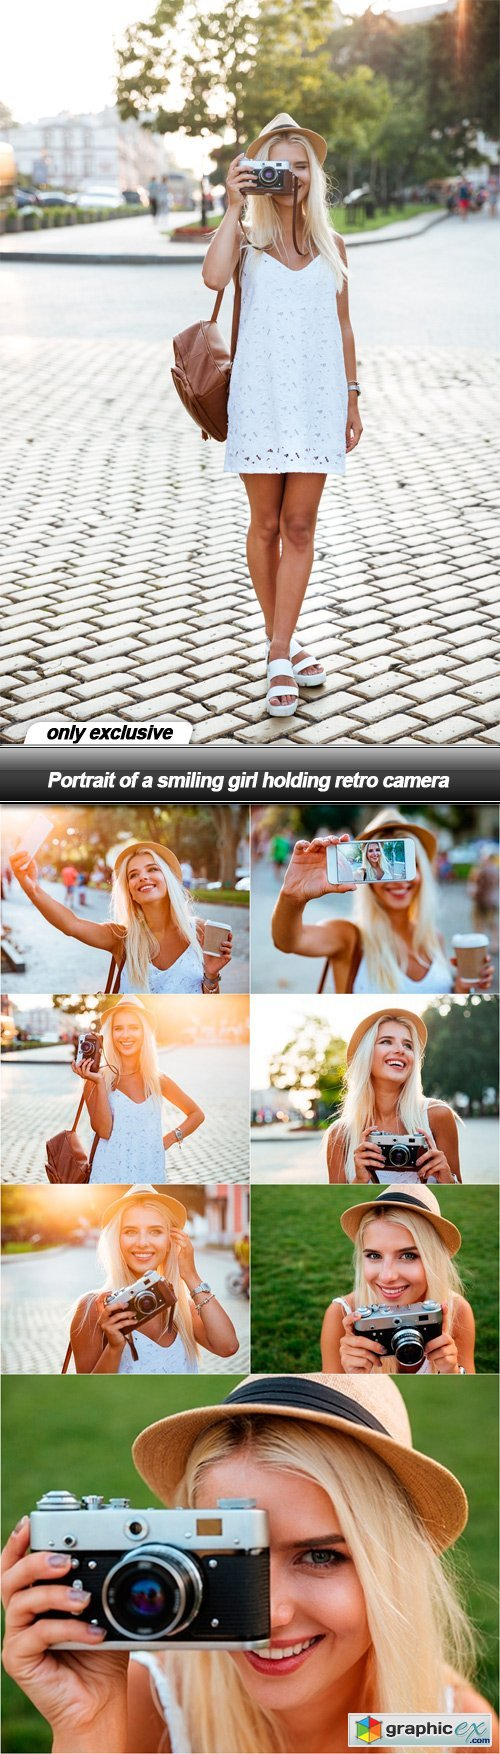 Portrait of a smiling girl holding retro camera - 8 UHQ JPEG